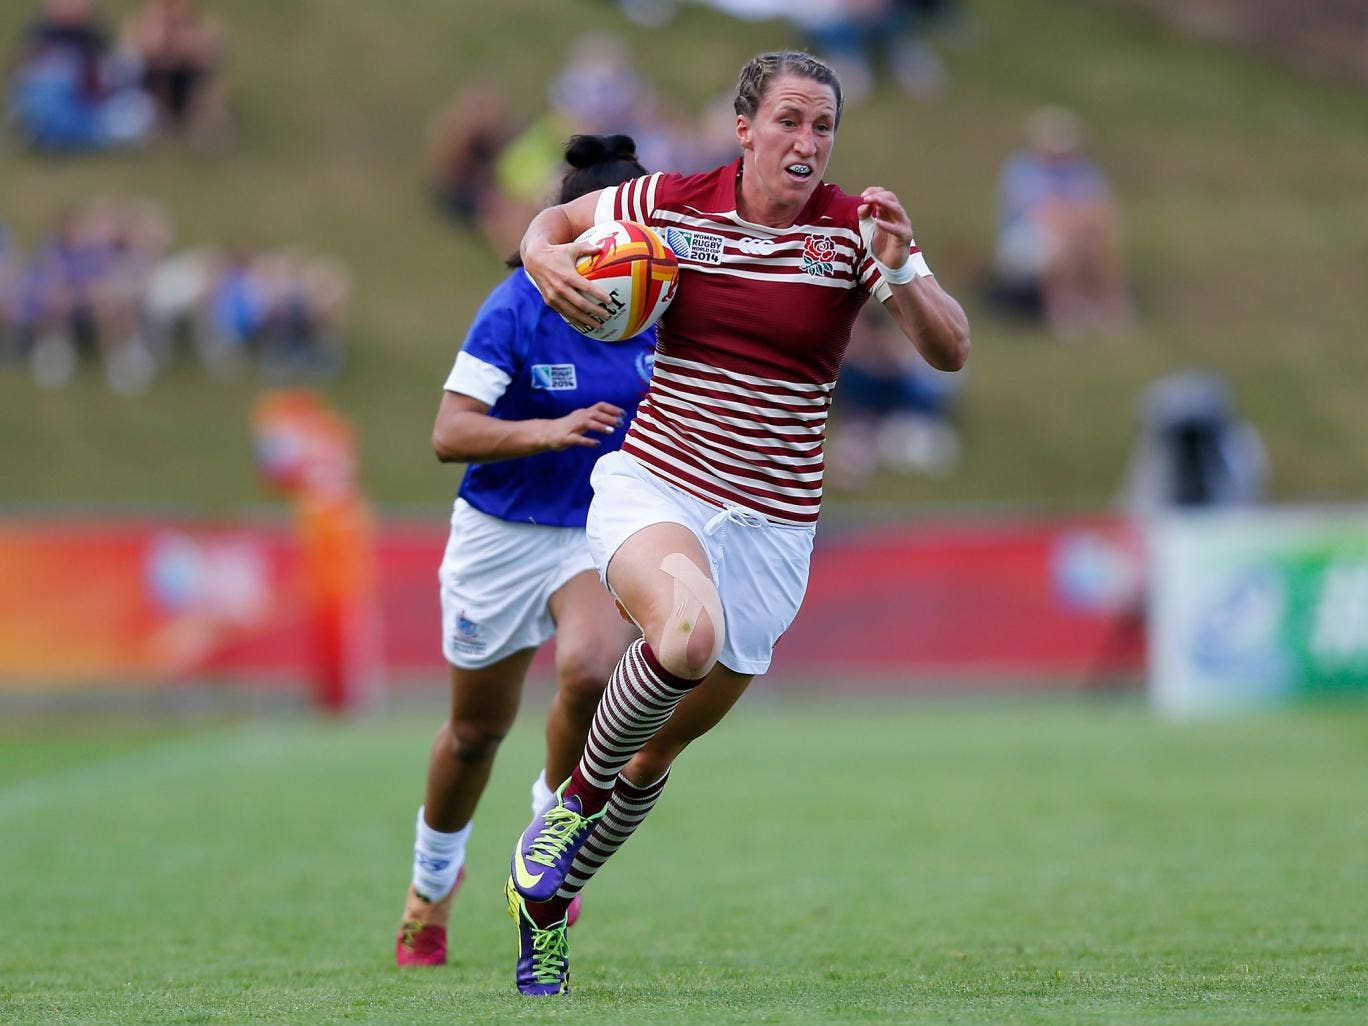 Kat Merchant showed some quick feet to score England's first two tries in the win over Samoa